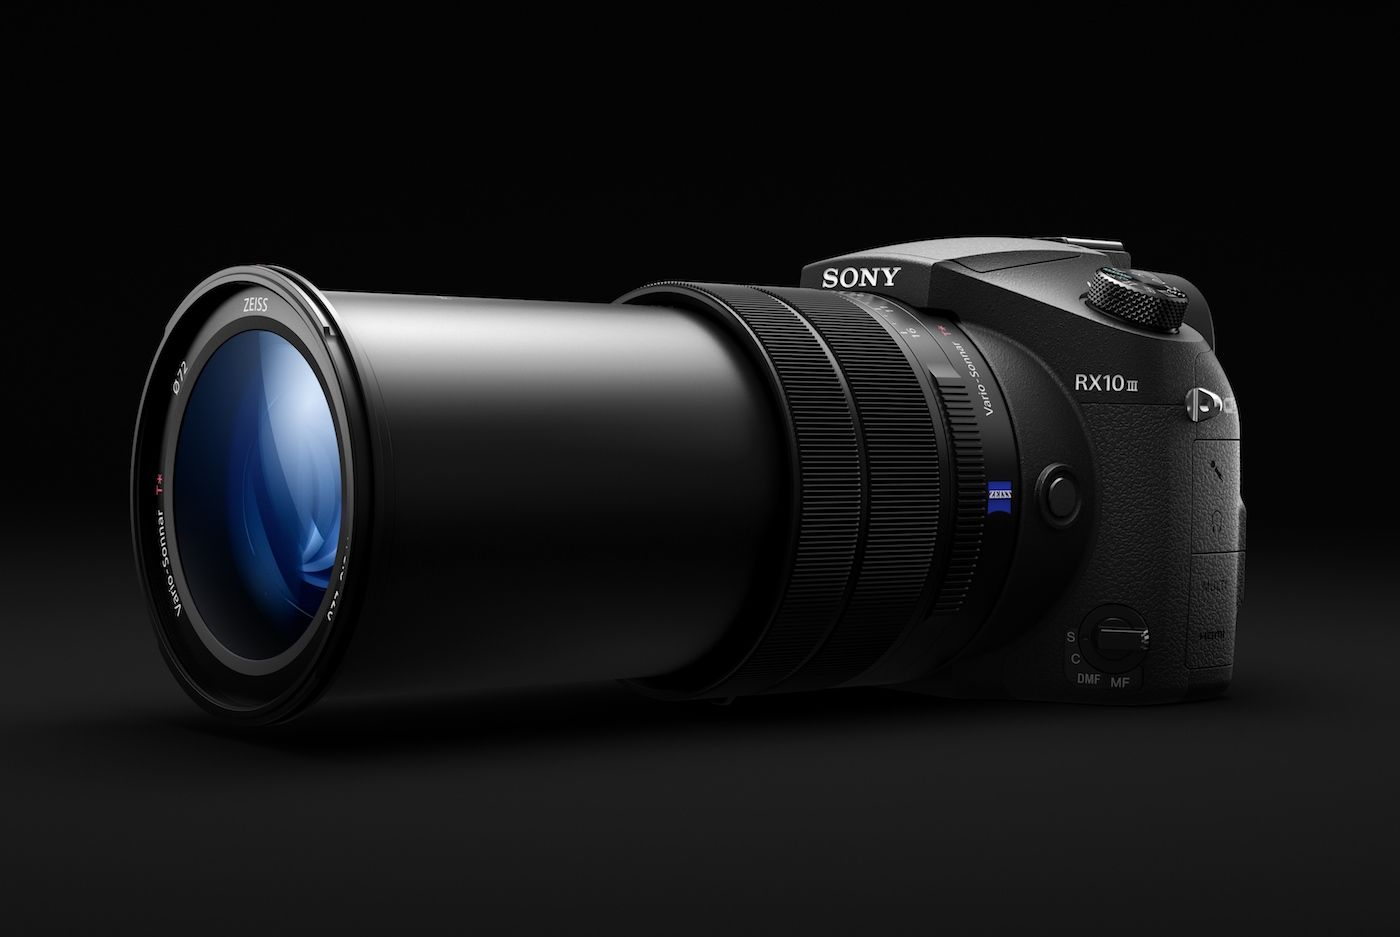 Sony S Rx10 Iii Zoom Camera Steps Up To A 24 600mm Lens Sony Camera Still Camera Sony Electronics